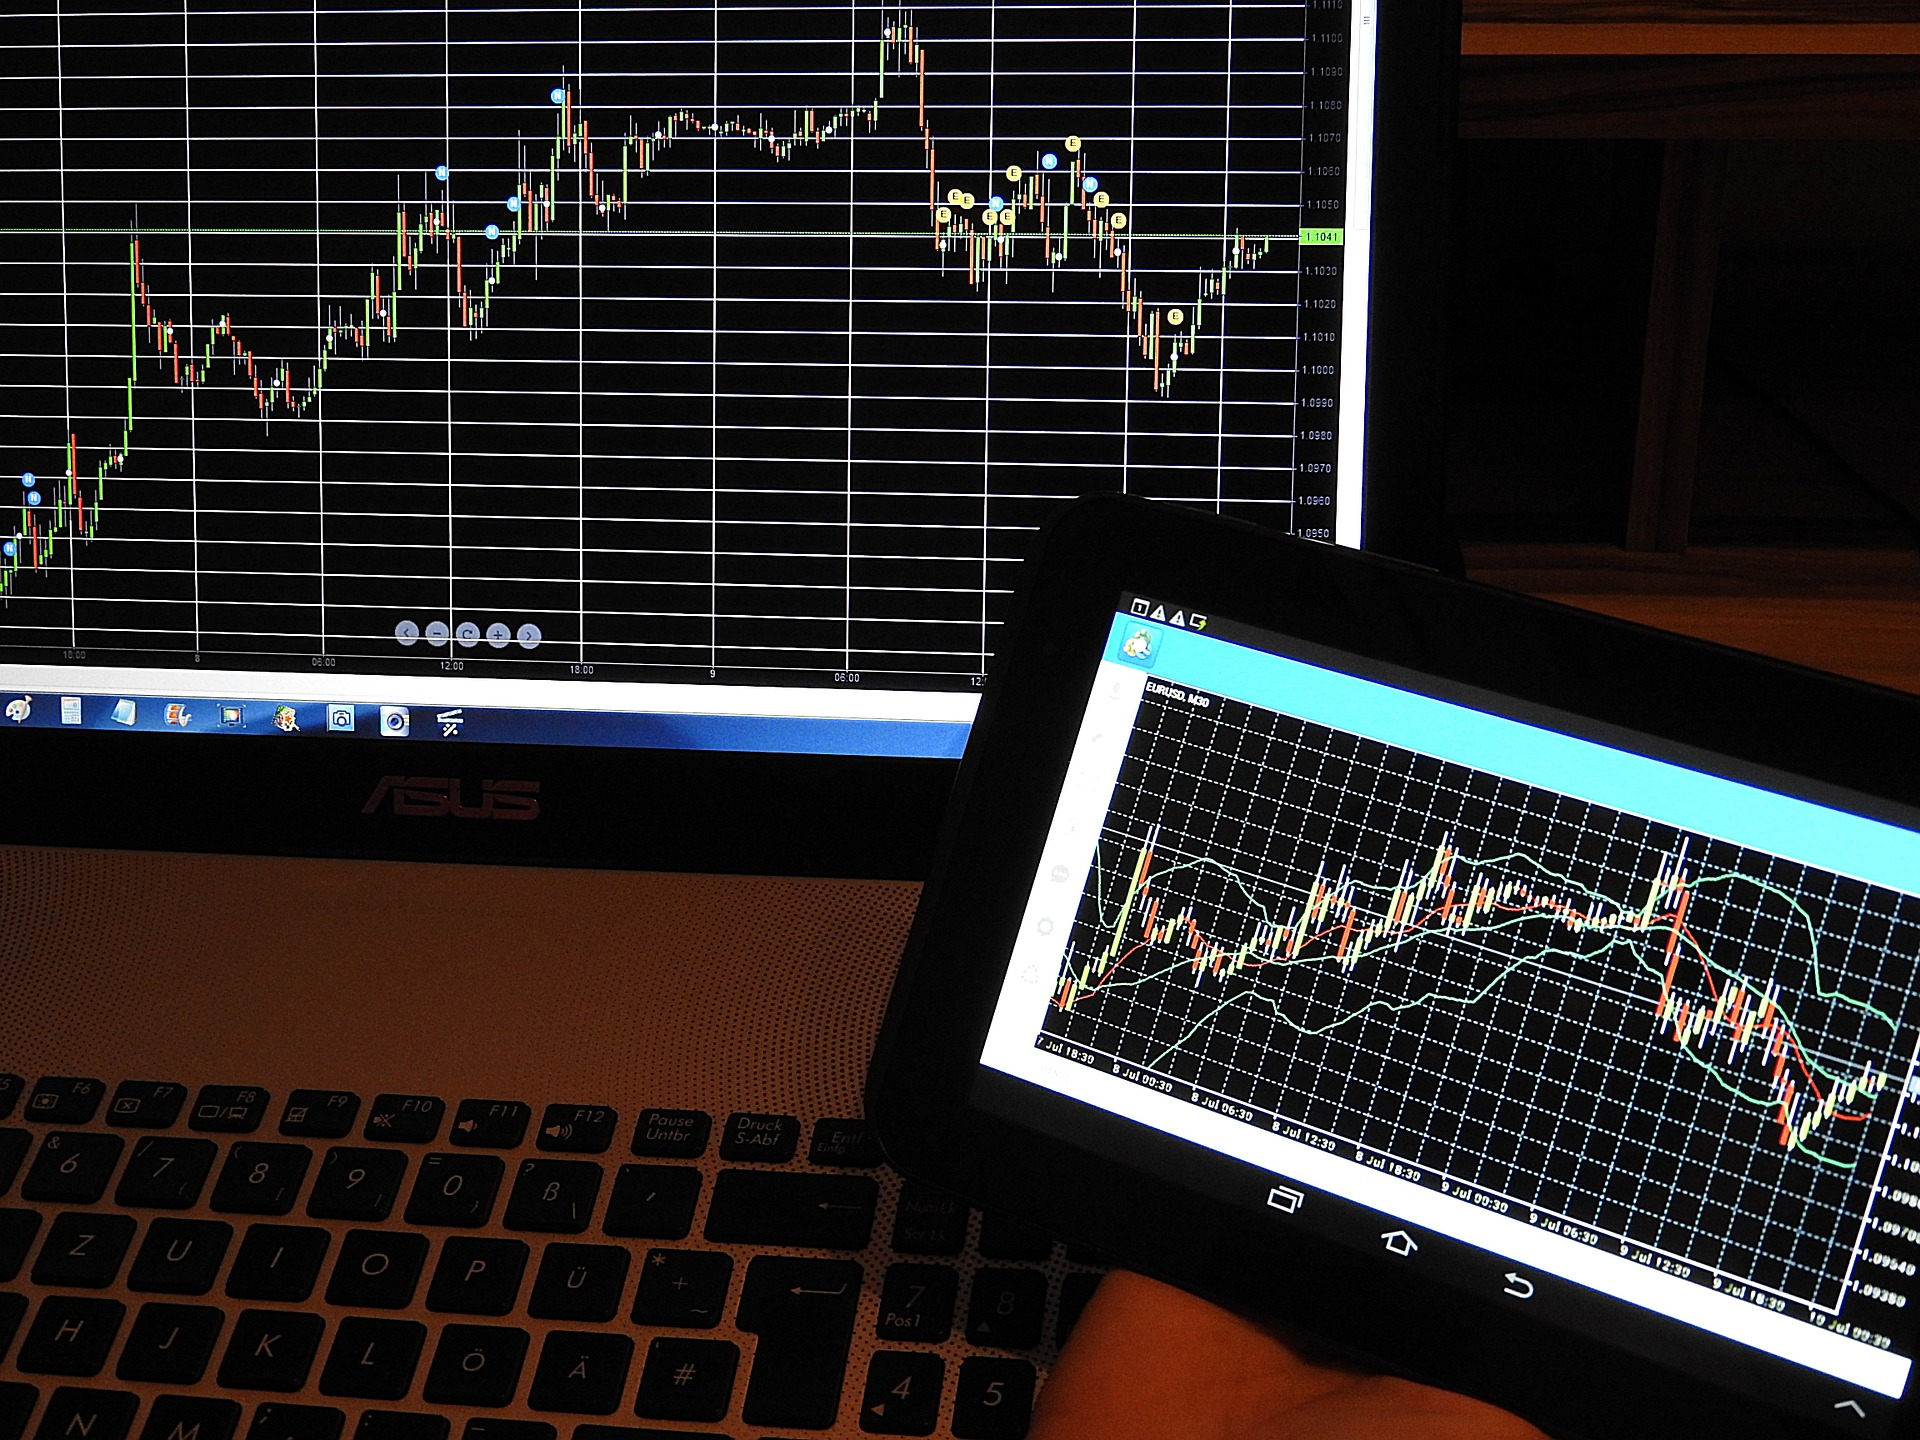 How to Correctly Calculate When Trading Stocks